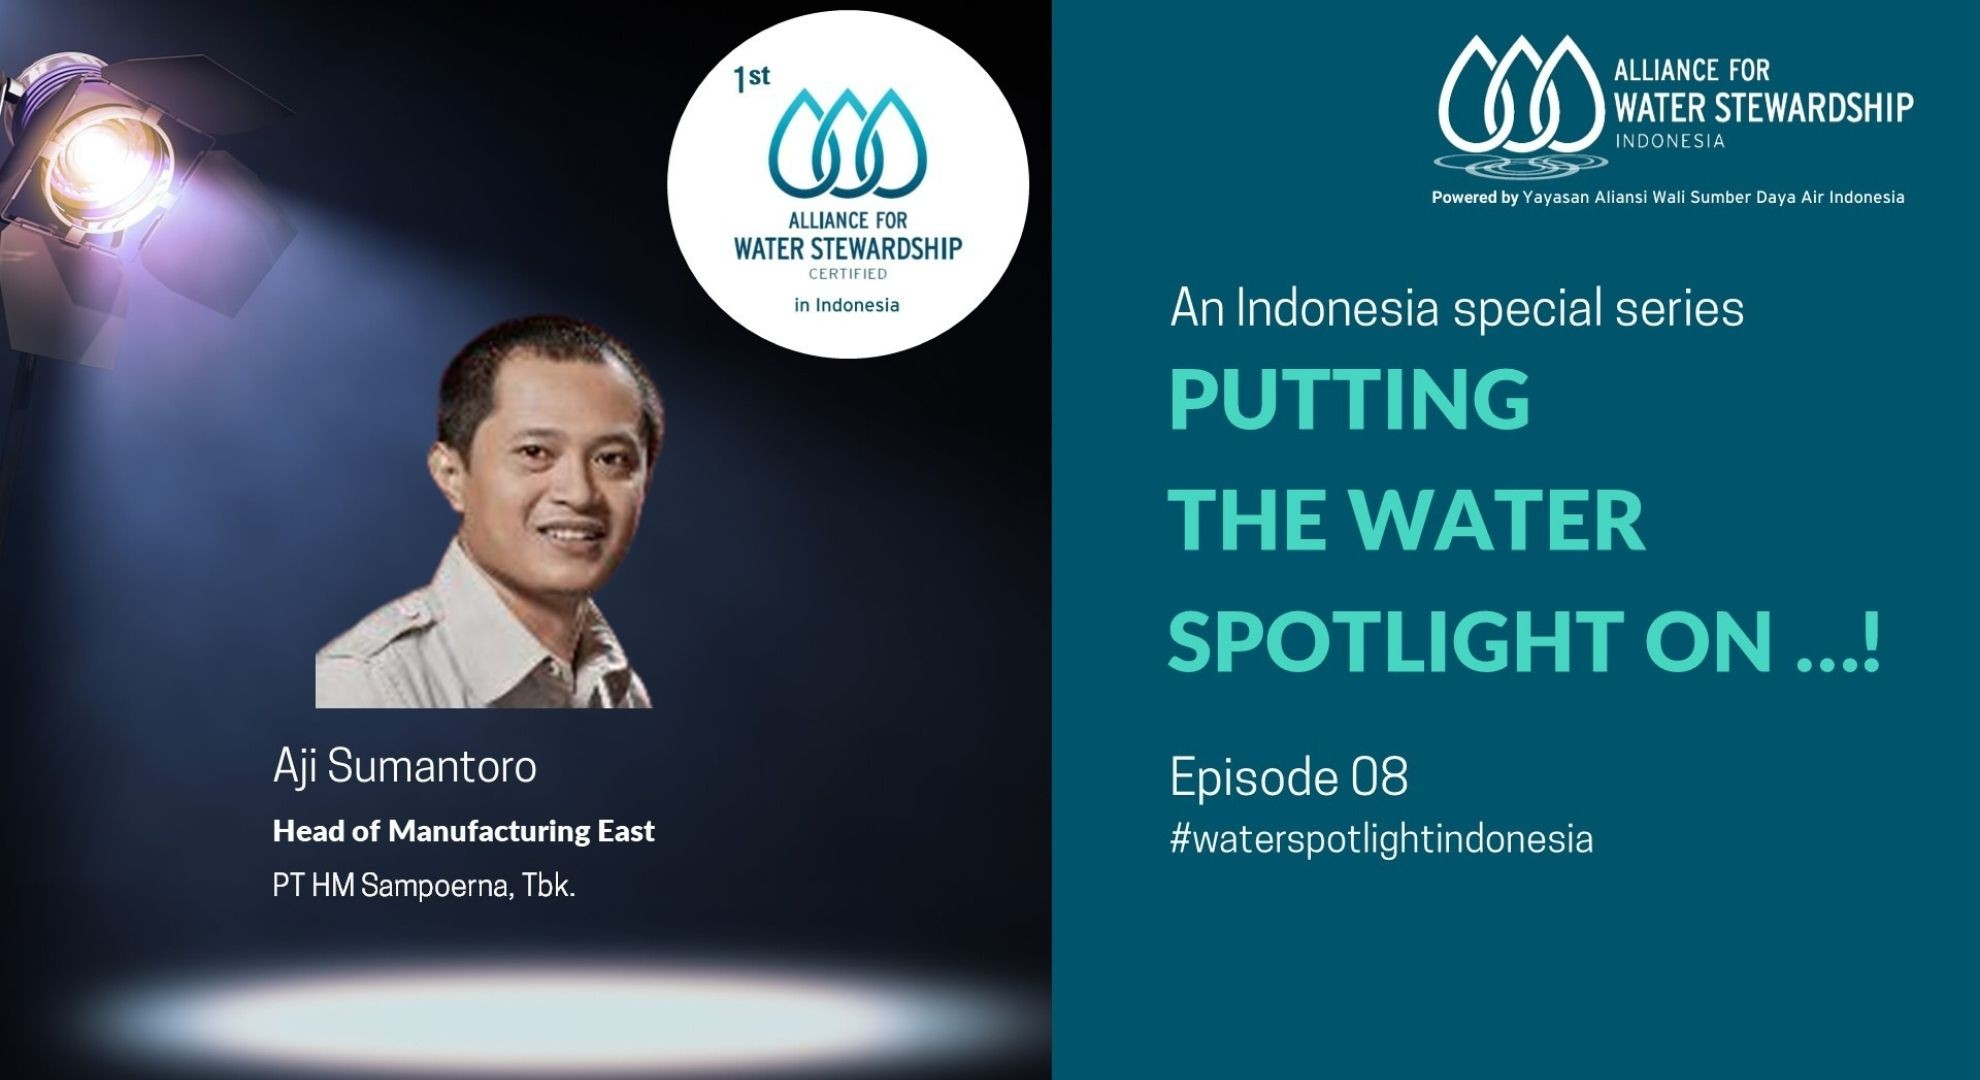 Putting the Water Spotlight on ...! Episode 08